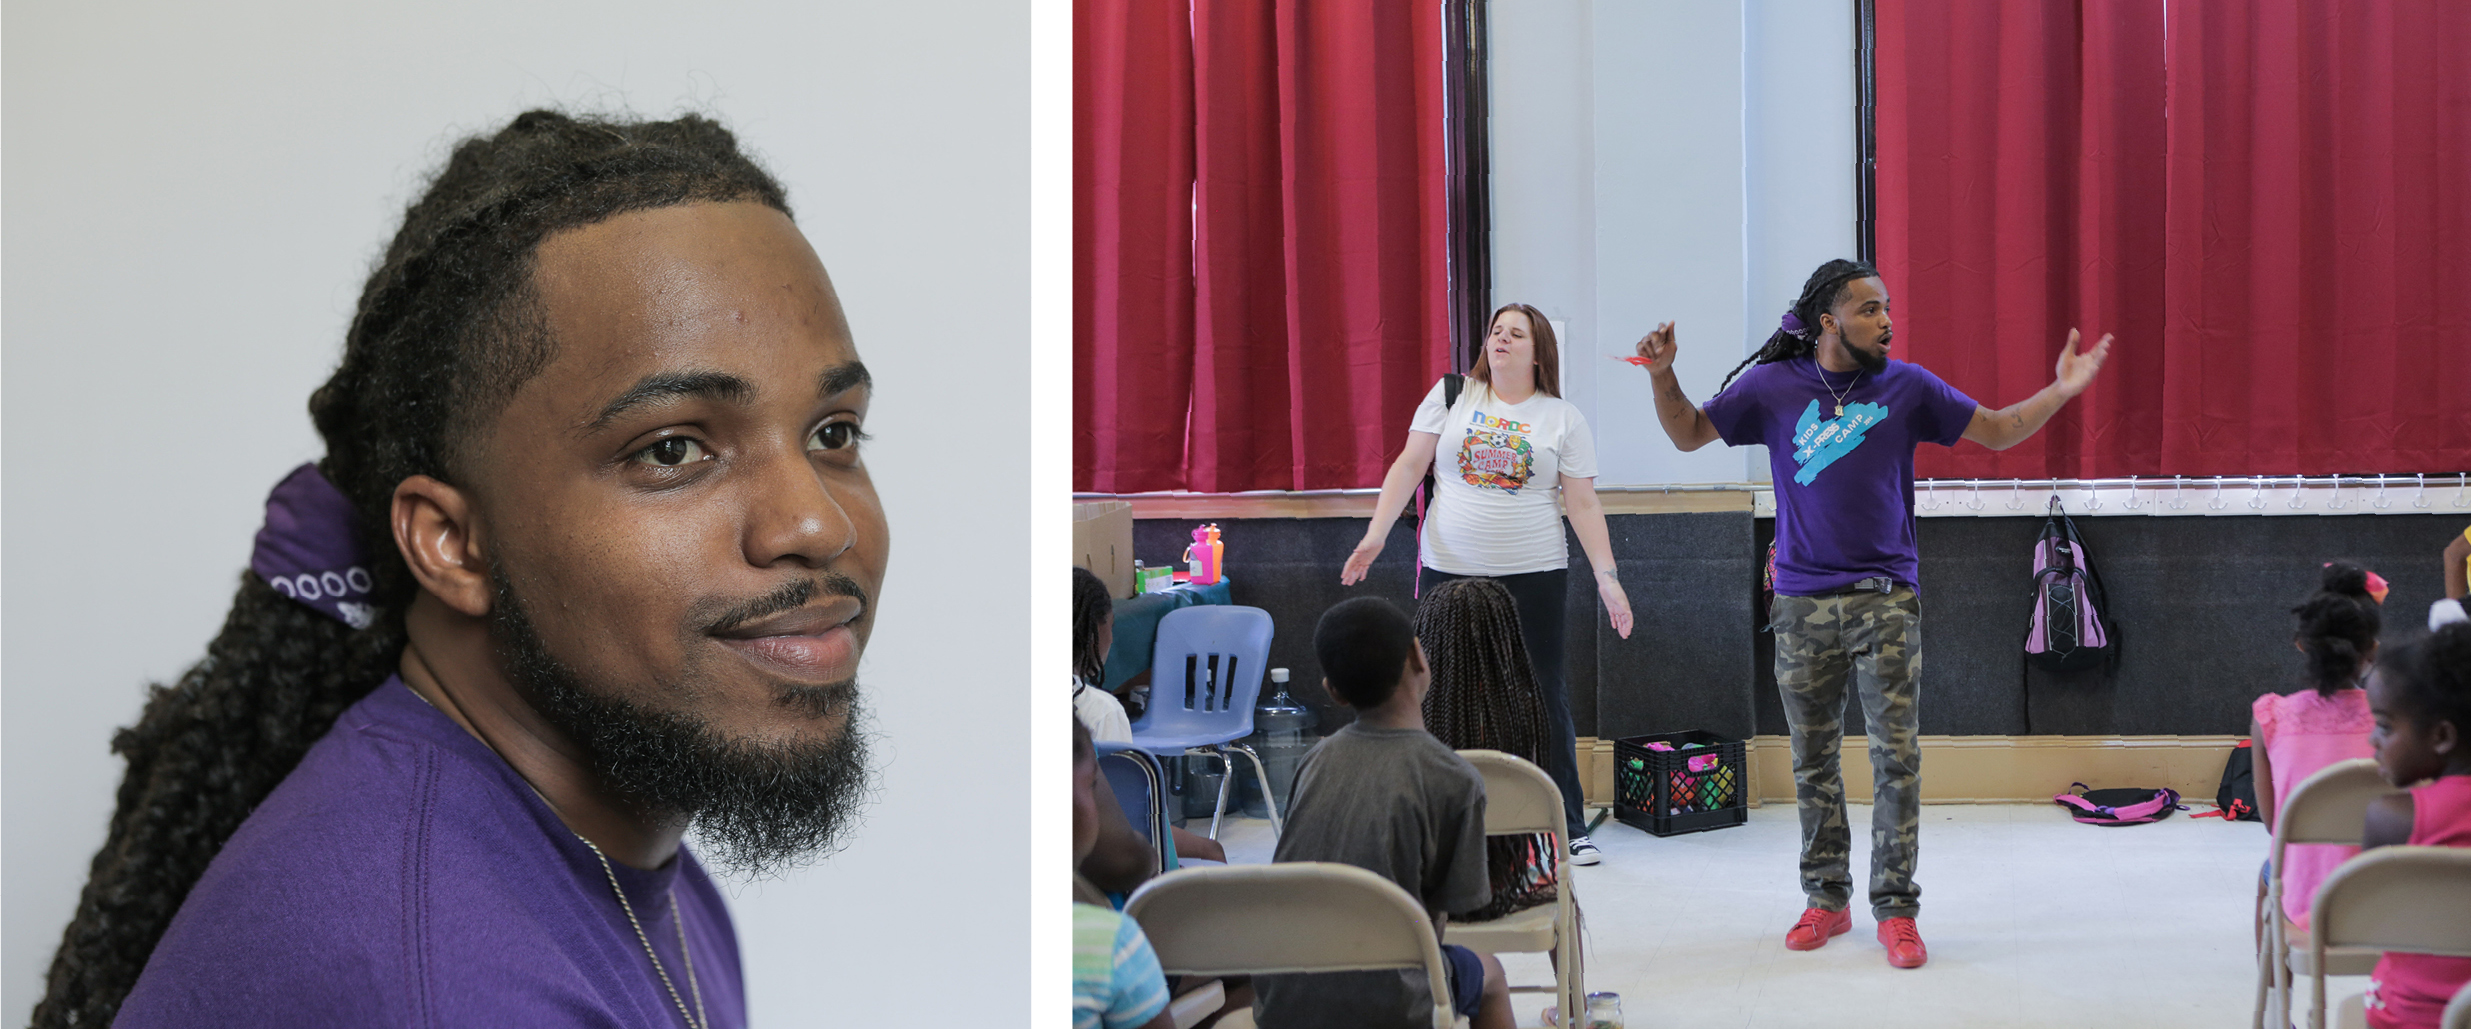 Darren Alridge now works at the New Orleans nonprofit organization where he took GED classes. Alridge calls on counselors at the Youth Empowerment Project to recognize outstanding students in their charge.